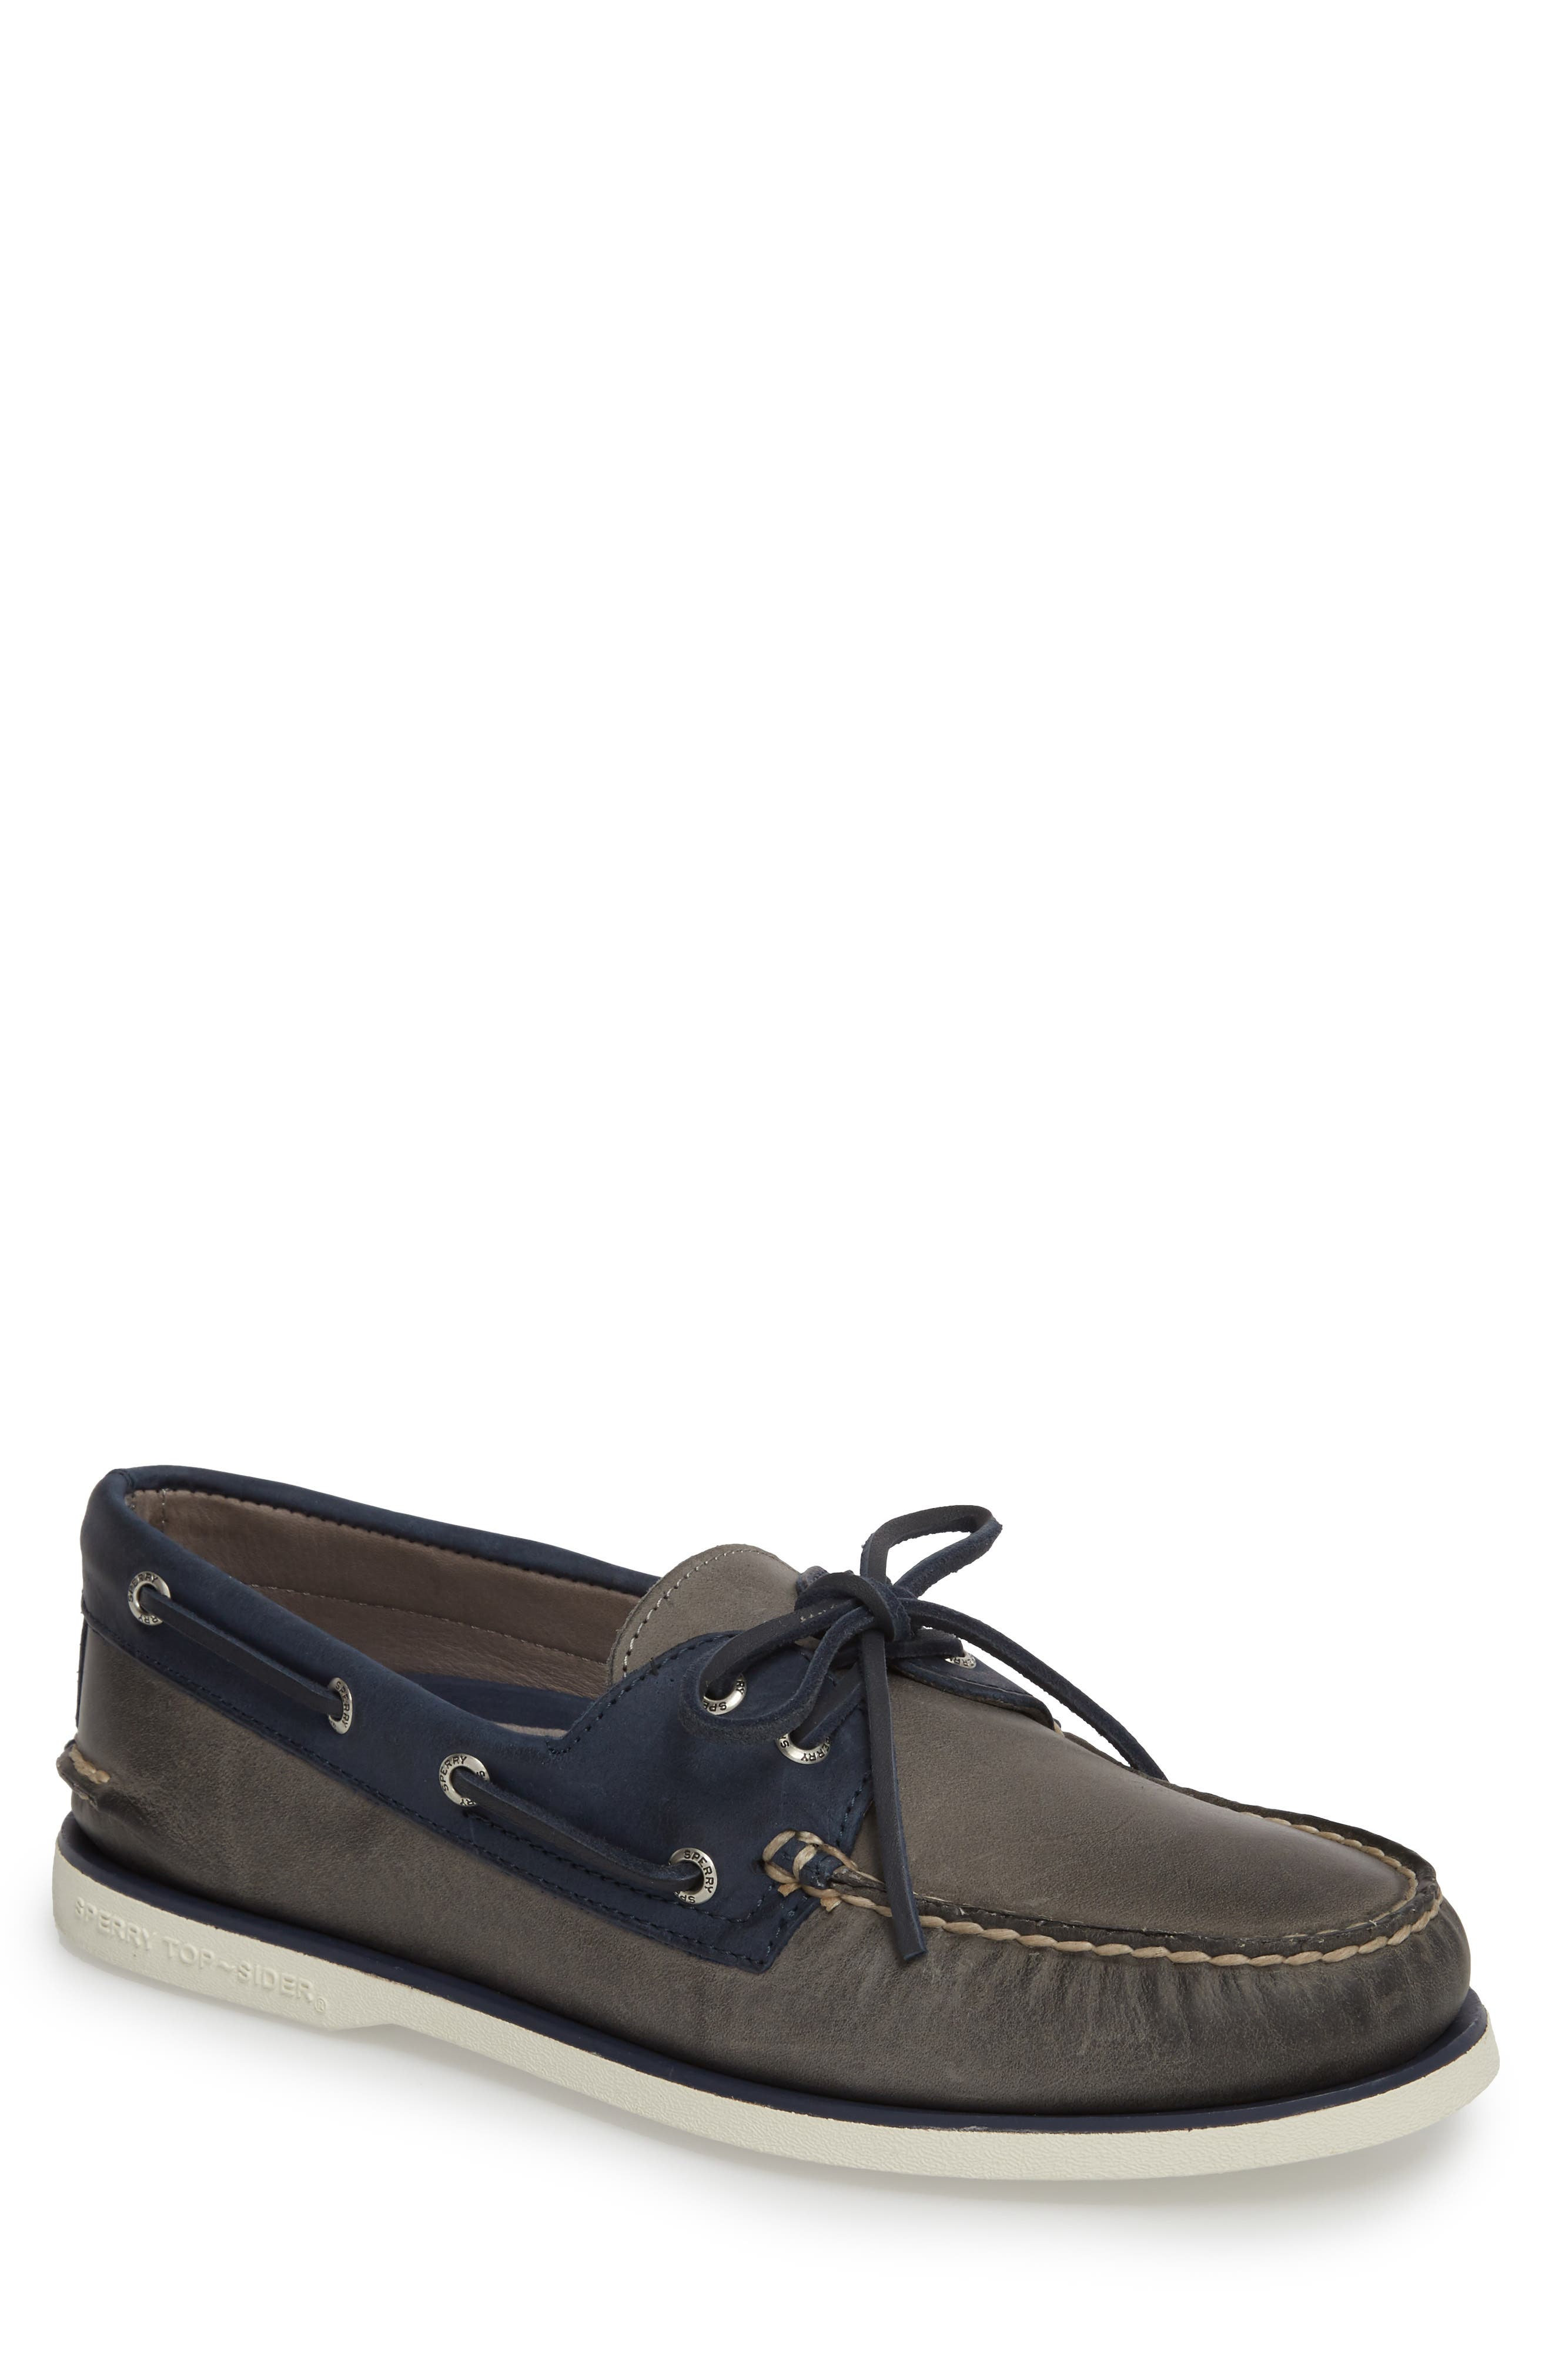 Sperry Gold Cup Authentic Original Boat Shoe (Men)